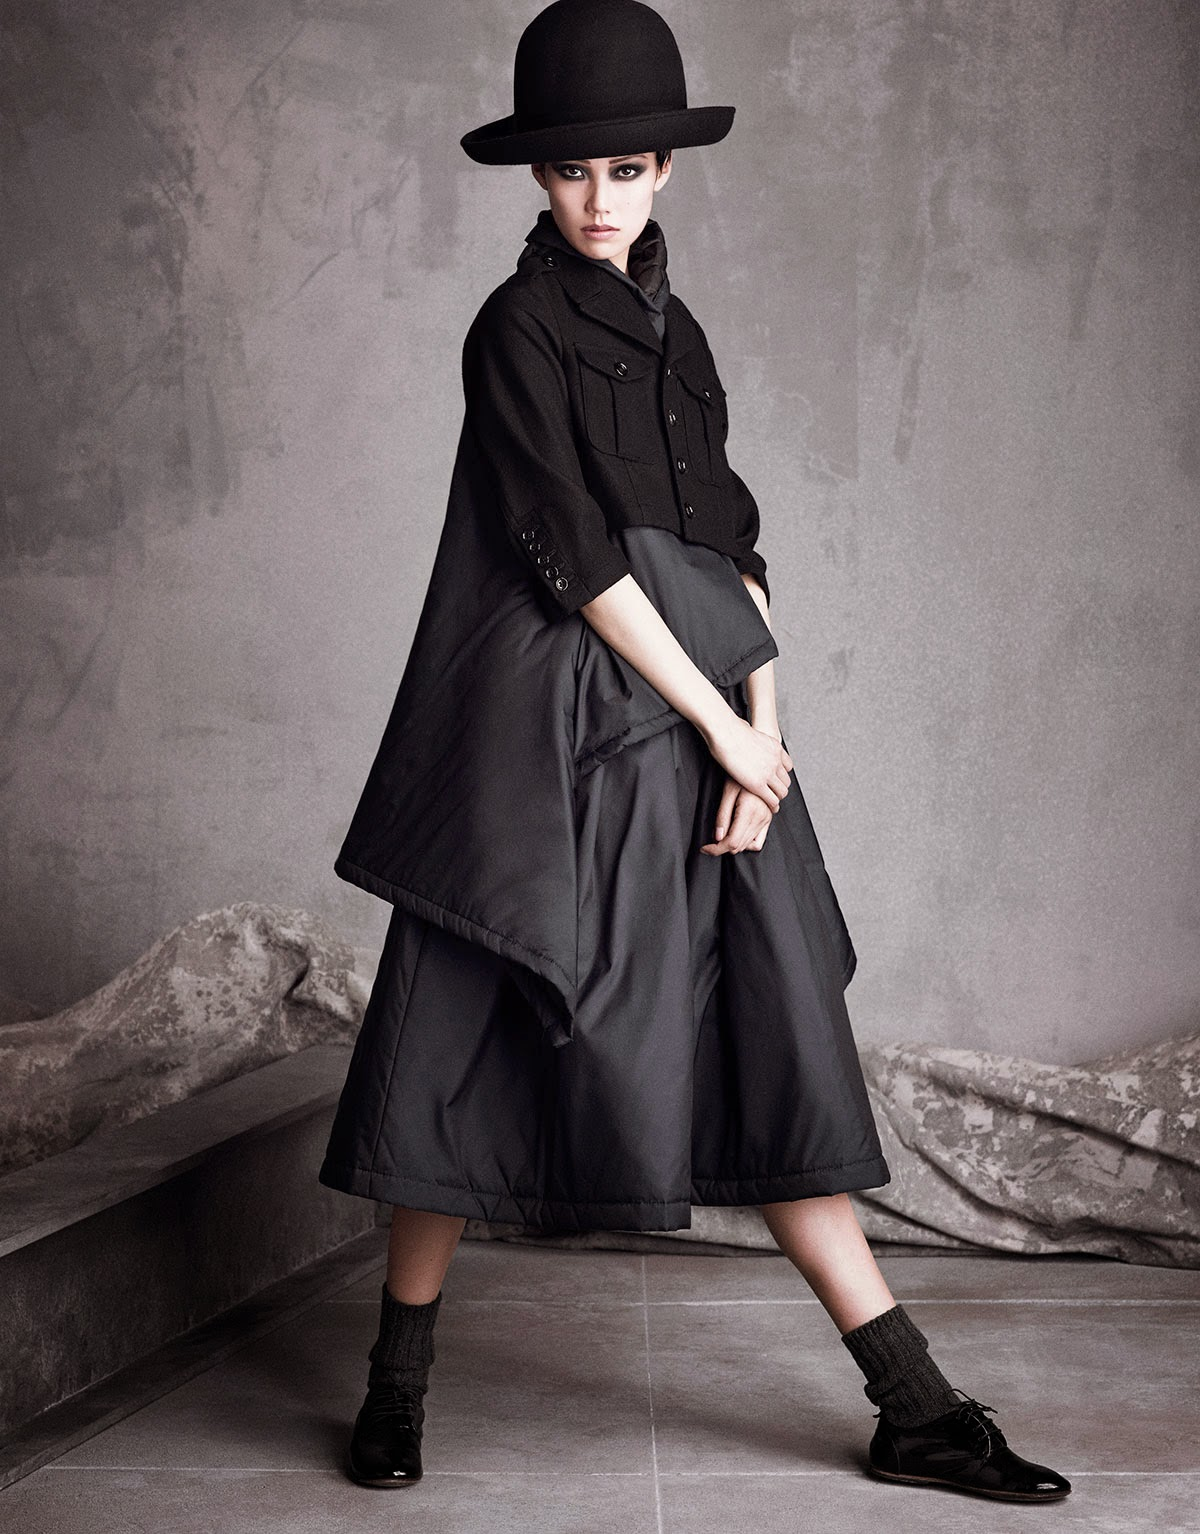 Tao-Okamoto-Perfect-Icon-Vogue-Japan-September-2014